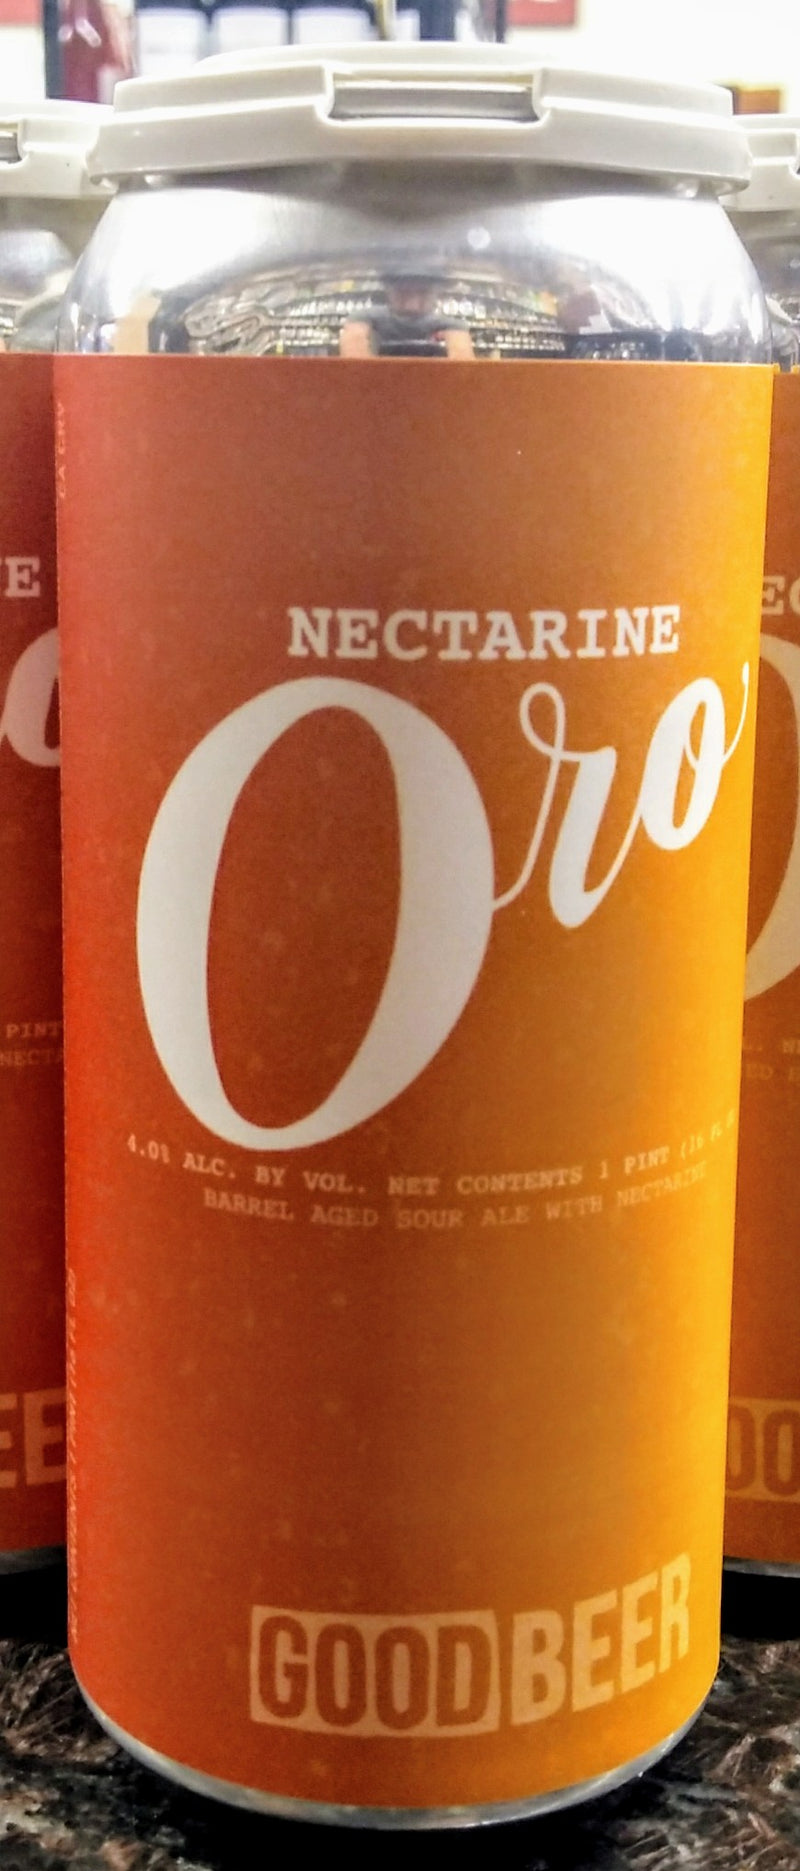 THE GOOD BEER CO. ORO NECTARINE BARREL AGED SOUR ALE 16oz can